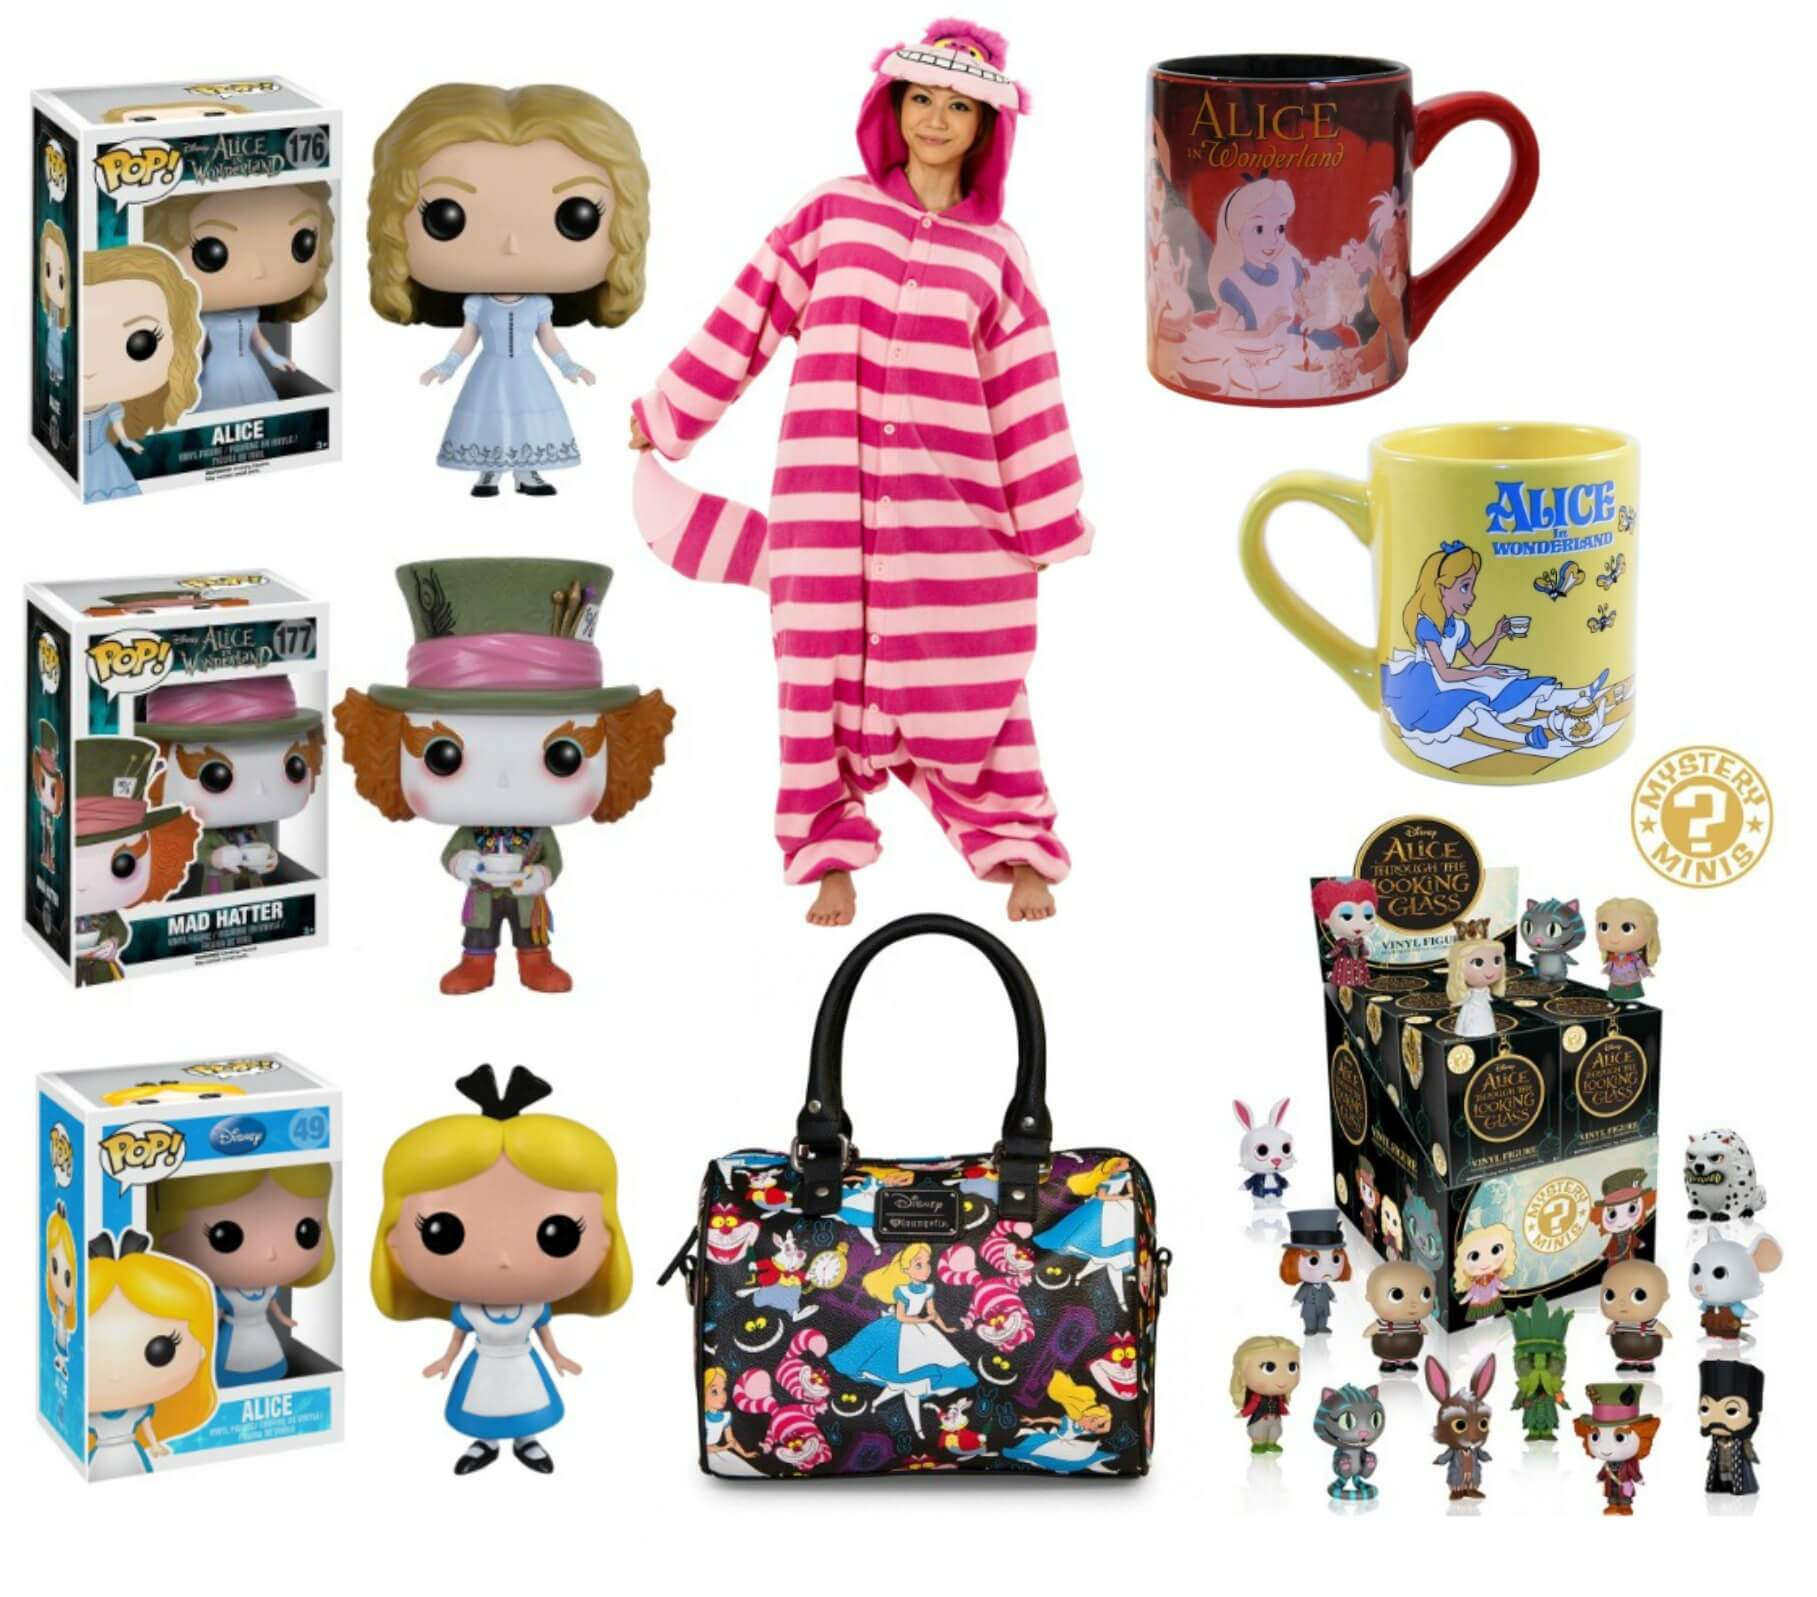 Alice in Wonderland Toys and Gifts